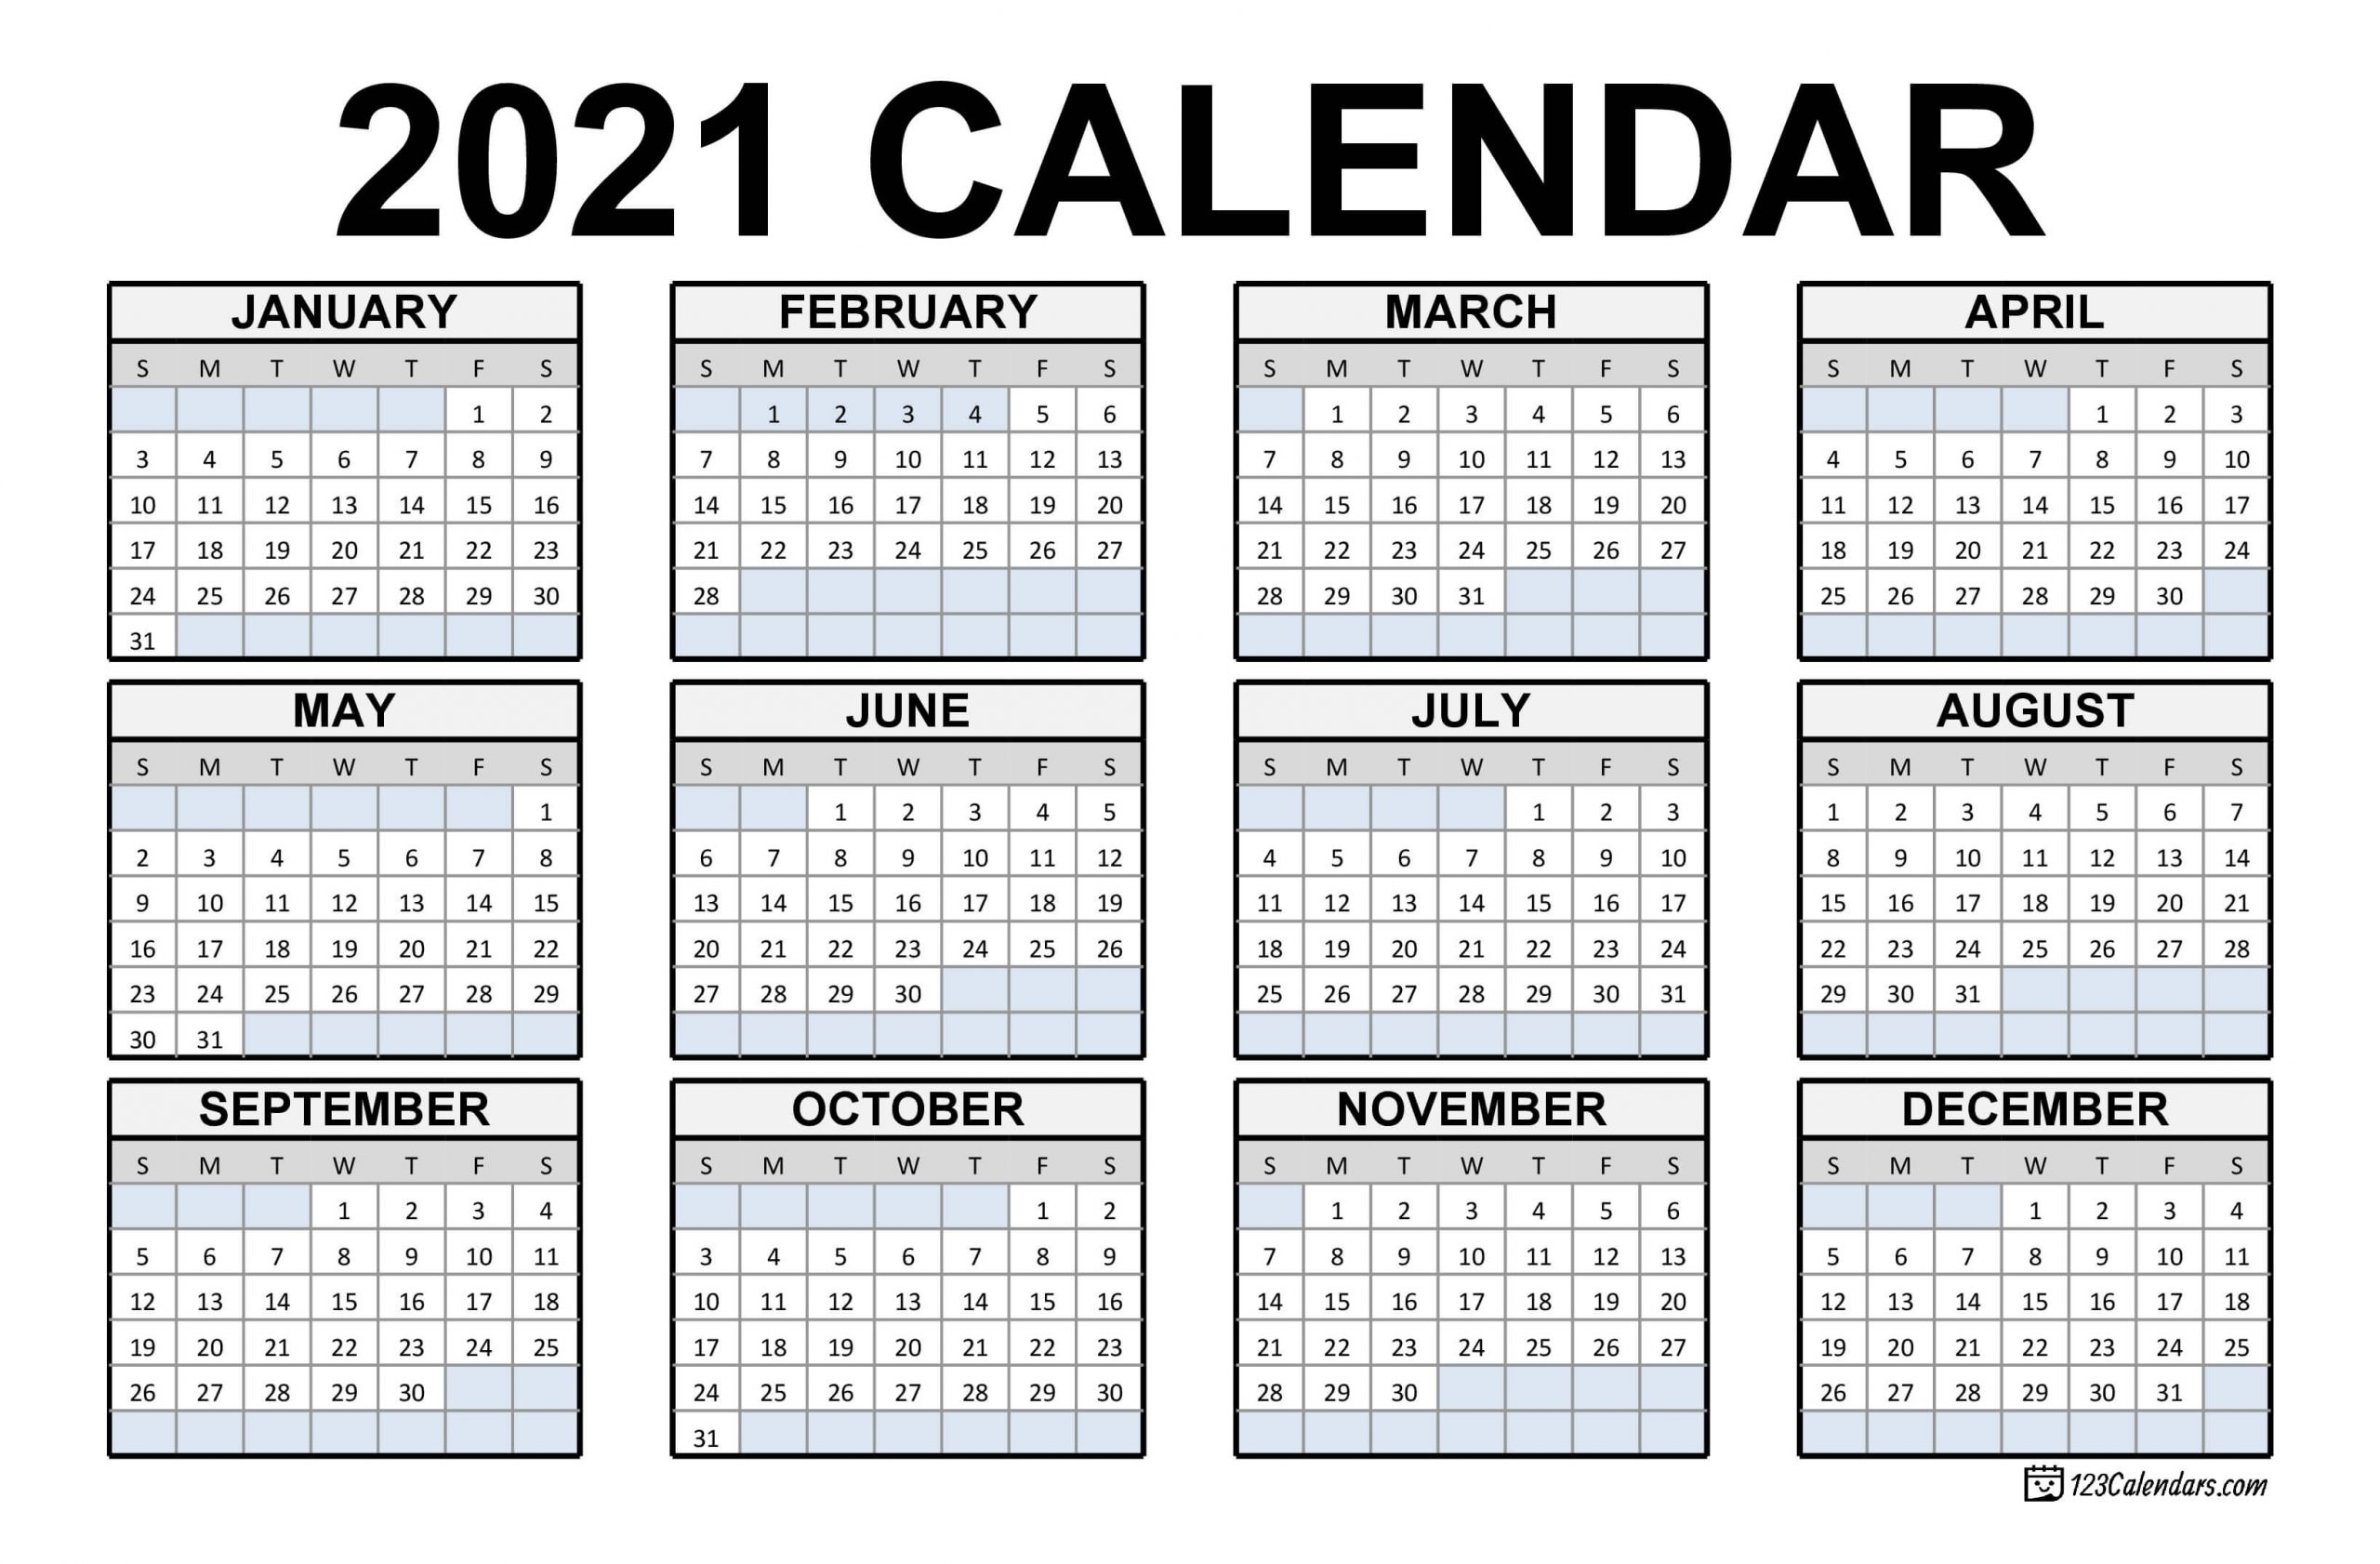 Catch Looking For Free Pocket Sized Yearly Calendars